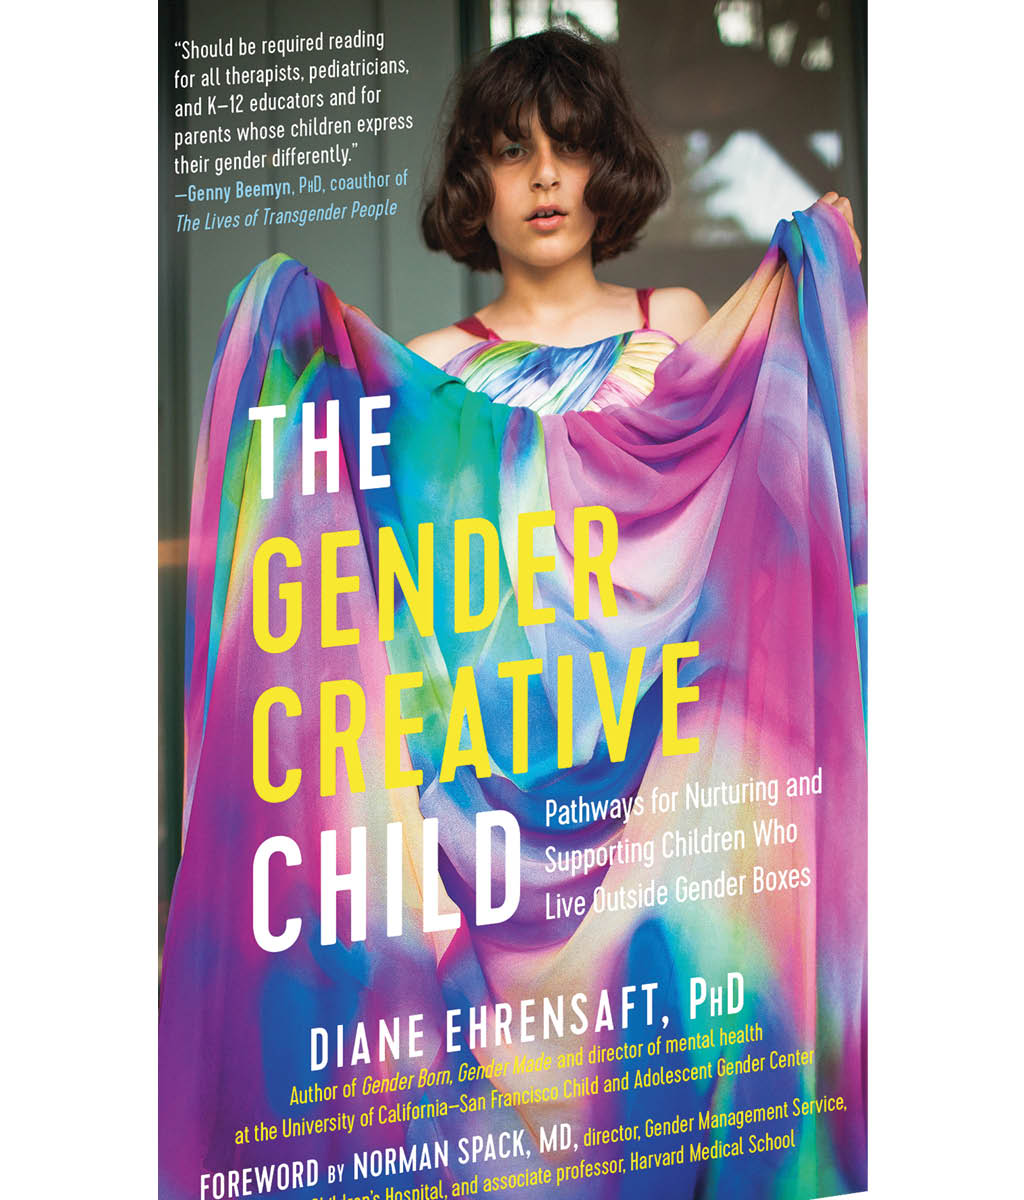 The Gender Creative Child: Pathways for Nurturing and Supporting Children Who Live Outside Gender Boxes by Diane Ehrensaft , Norman Spack